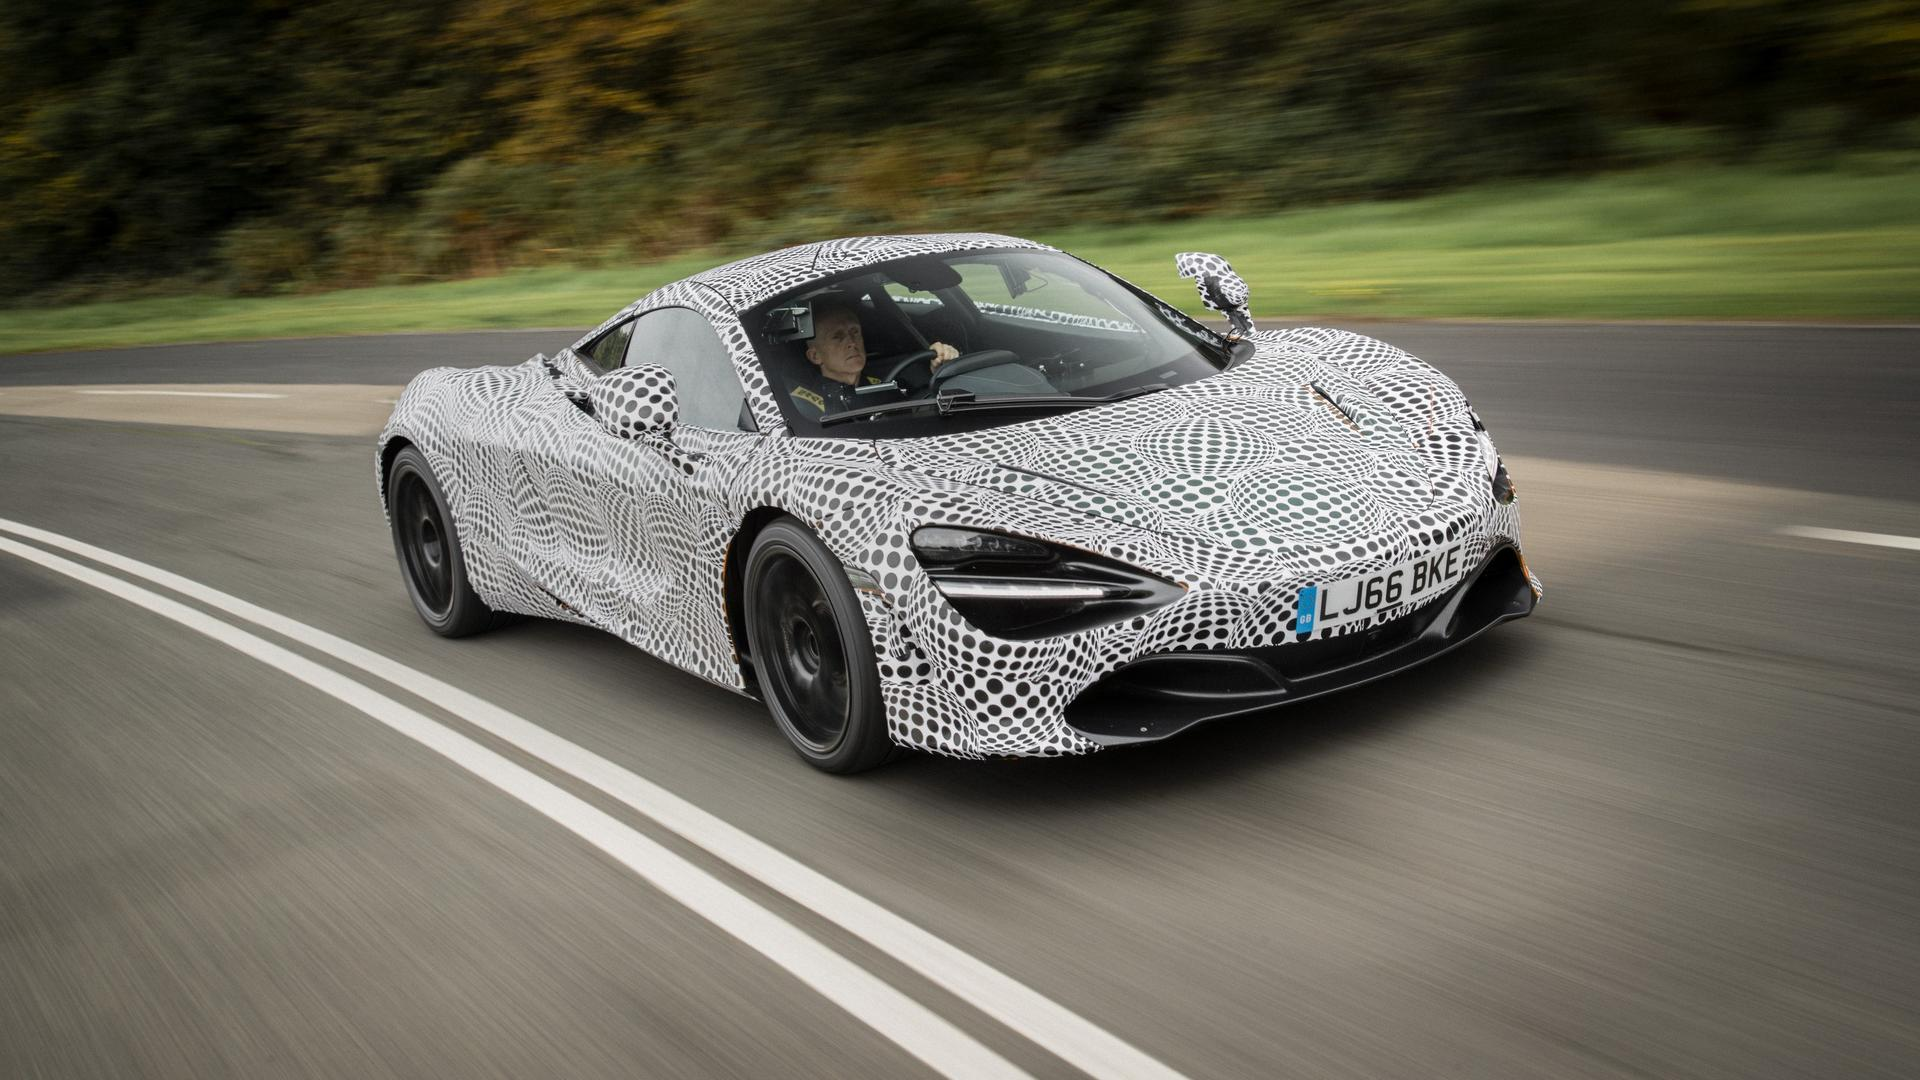 McLaren testing electric auto but production still years away